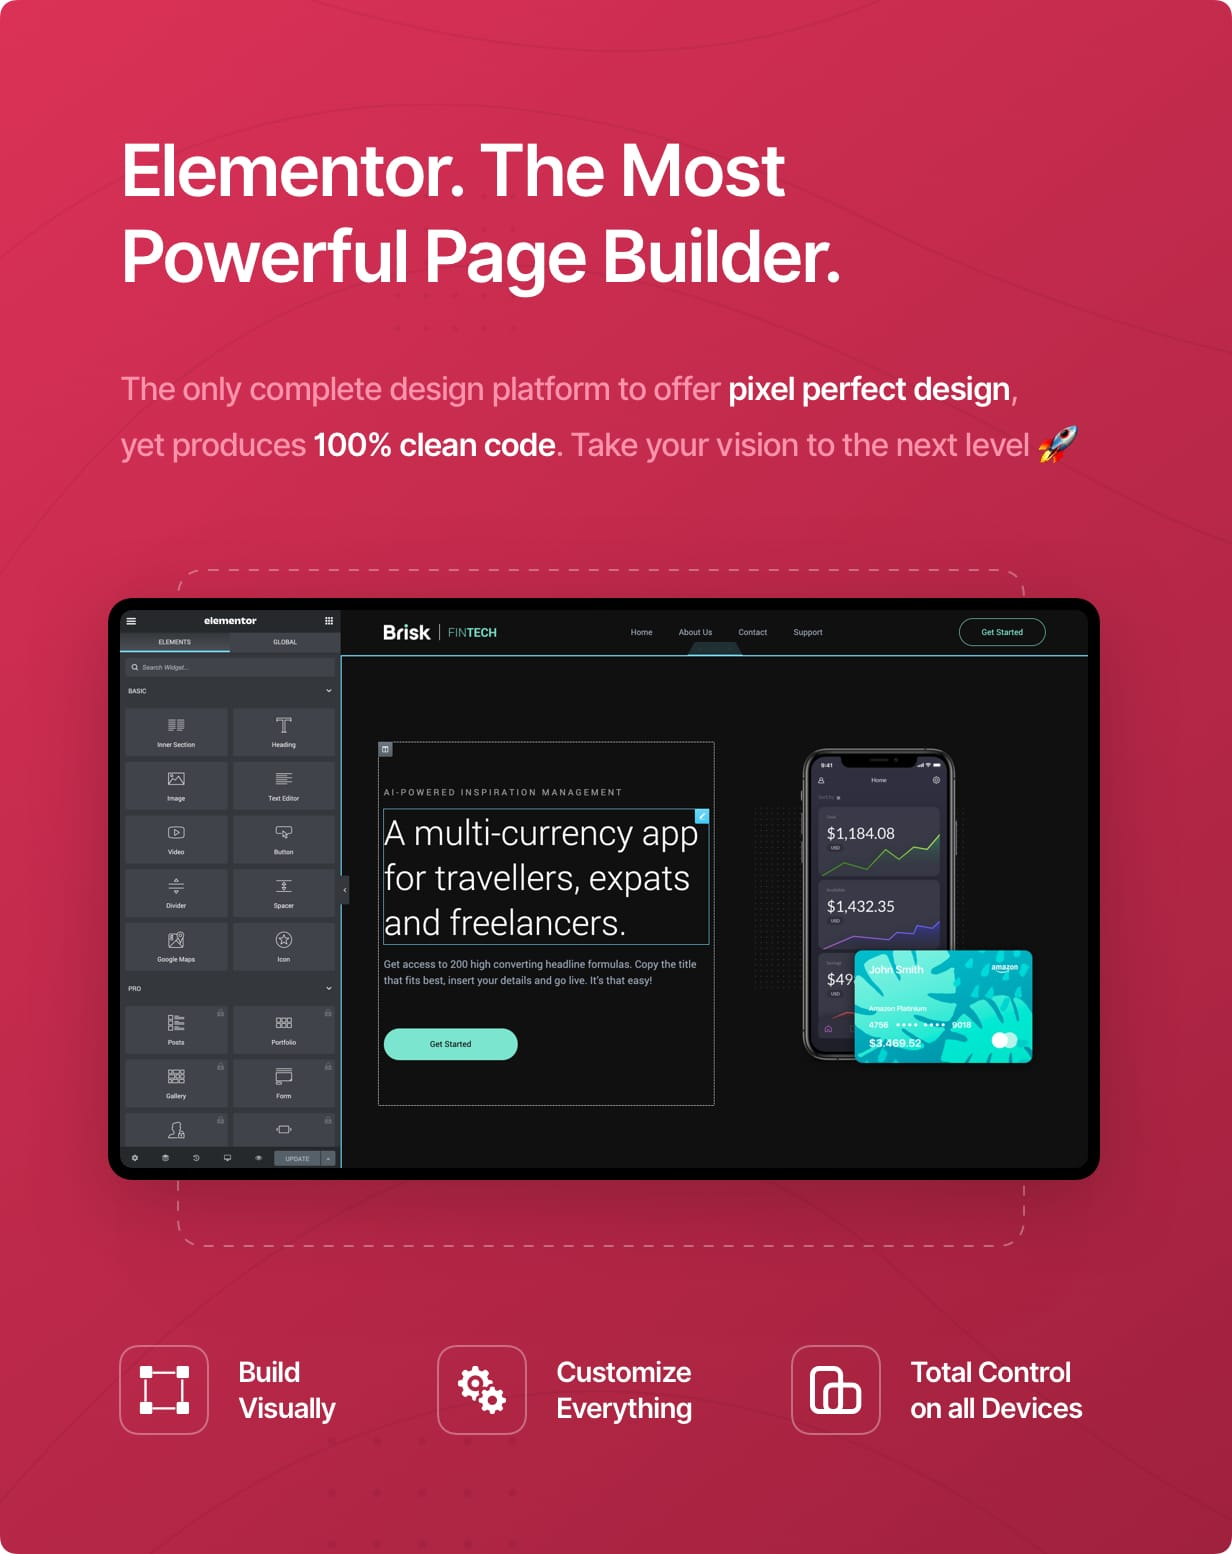 Elementor. The Most Powerful Page Builder.